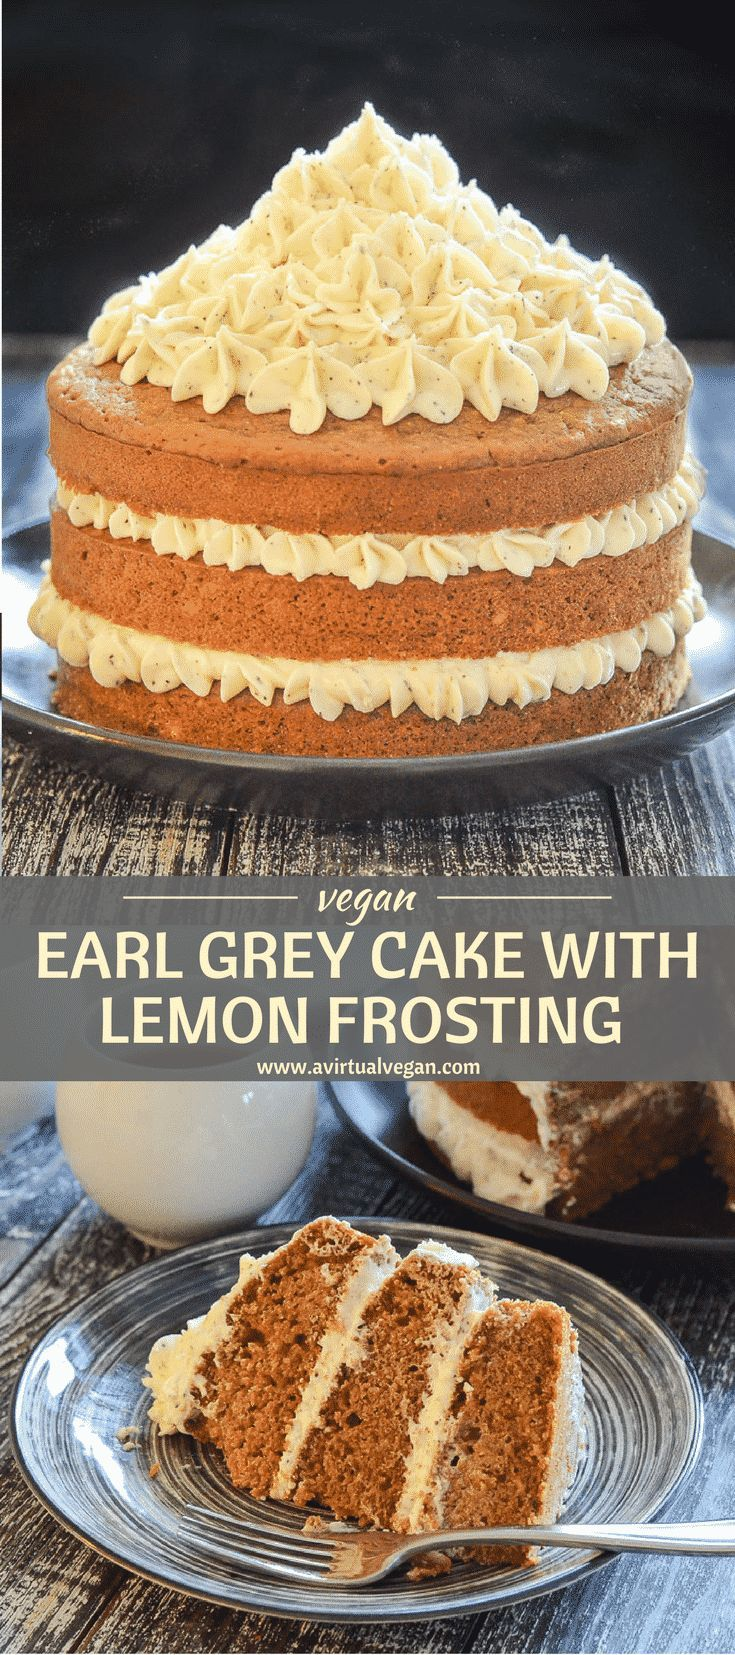 Vegan Earl Grey Cake with Lemon Frosting.